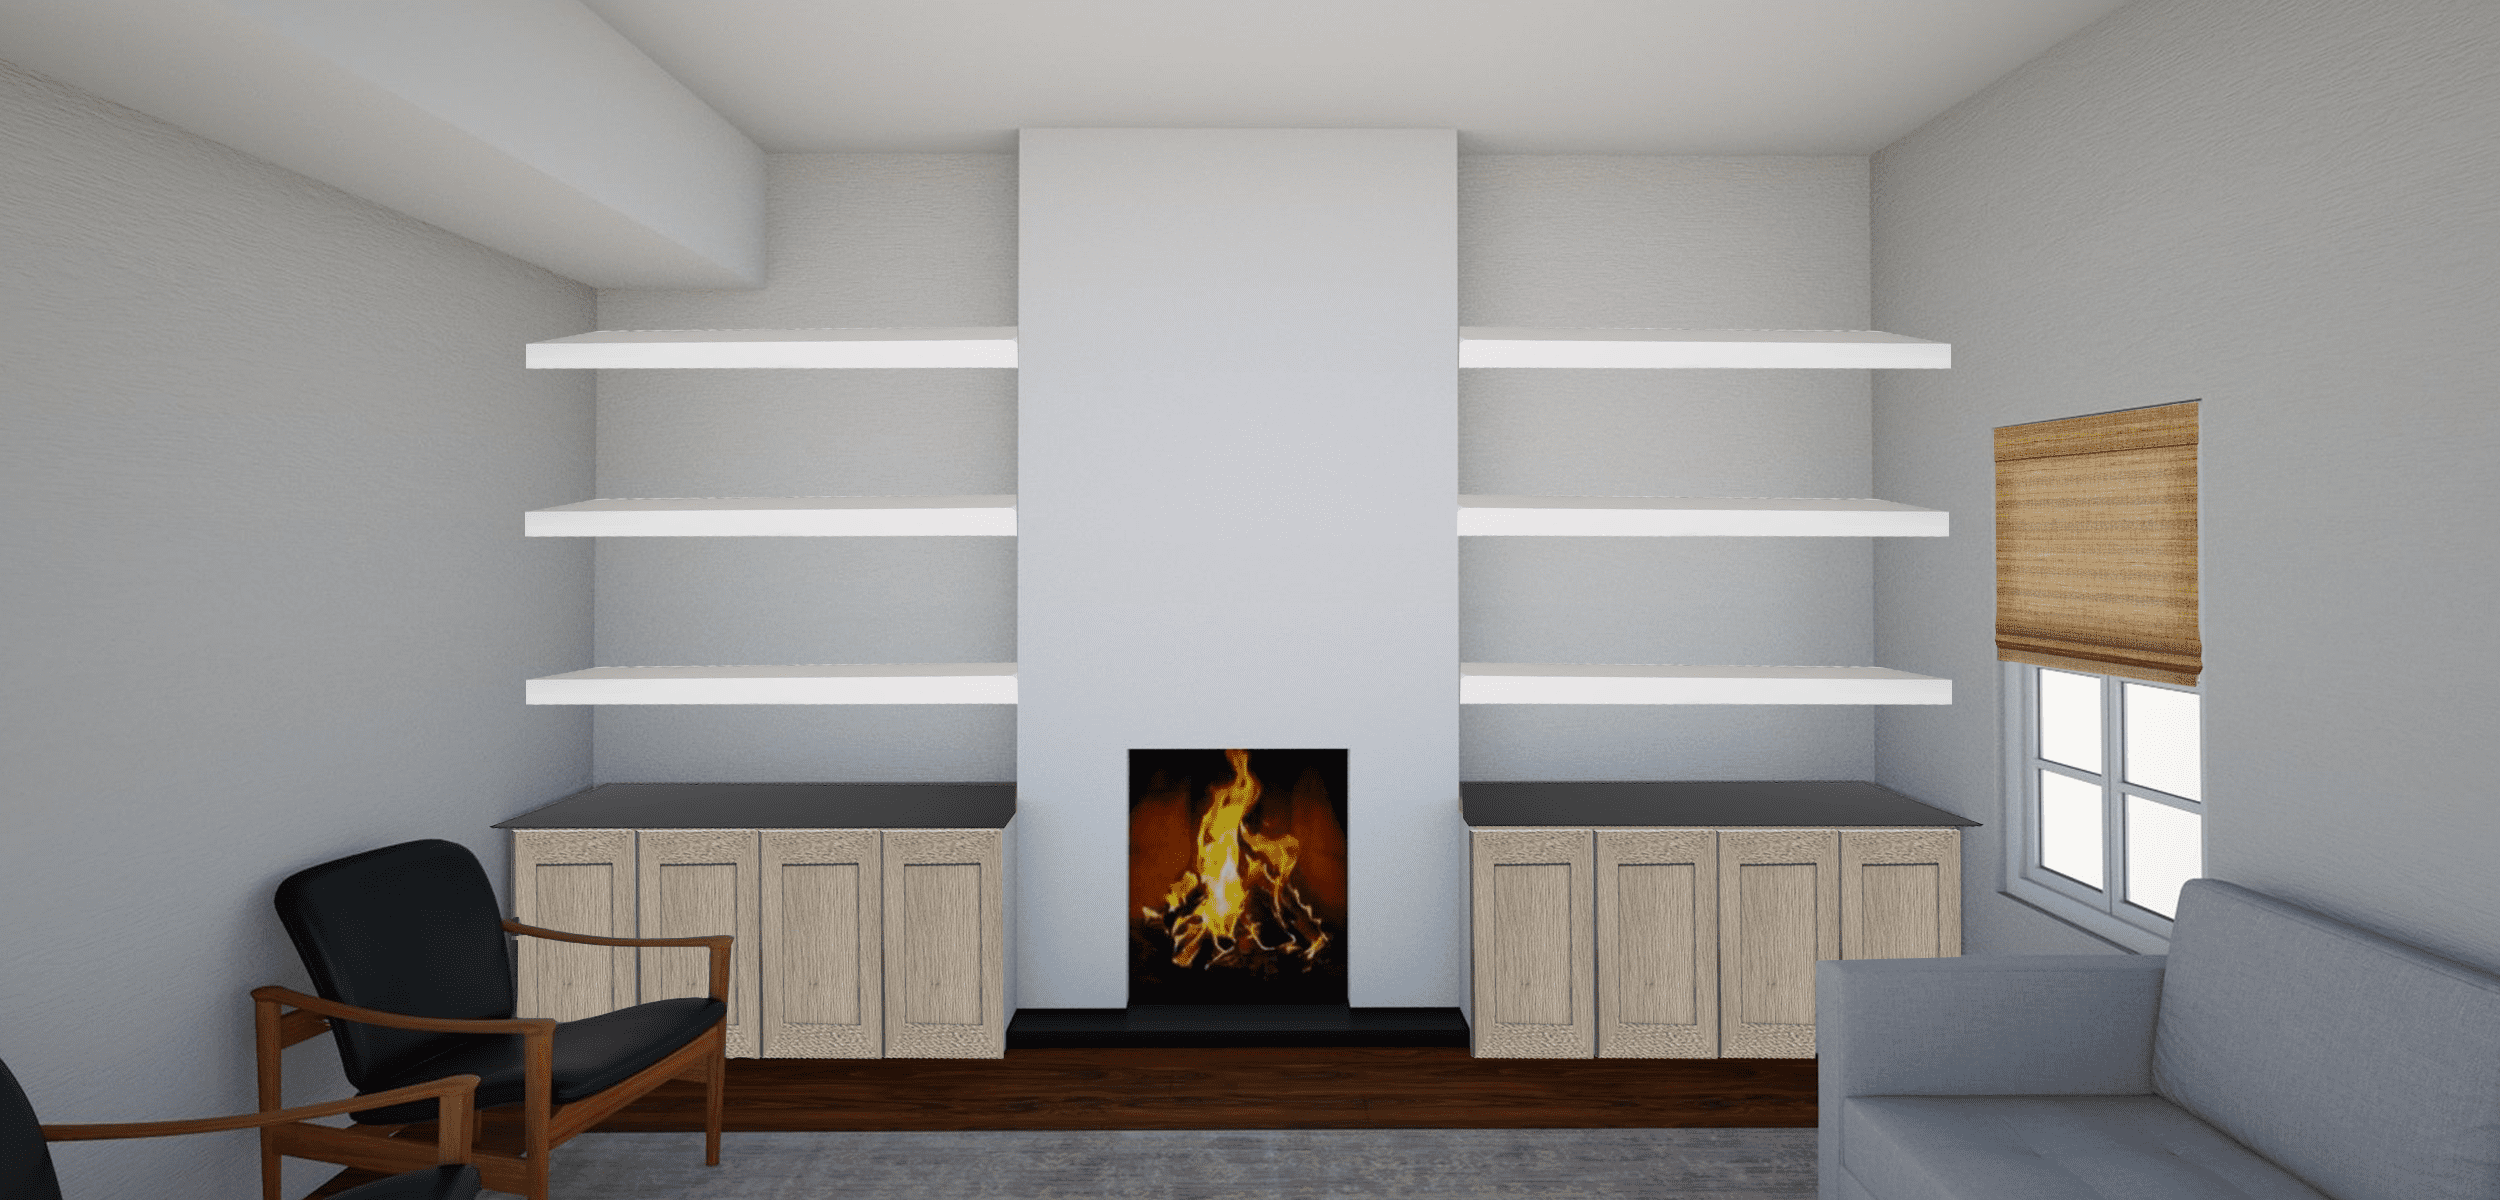 Fireplace Design Options For Our Living Room Makeover